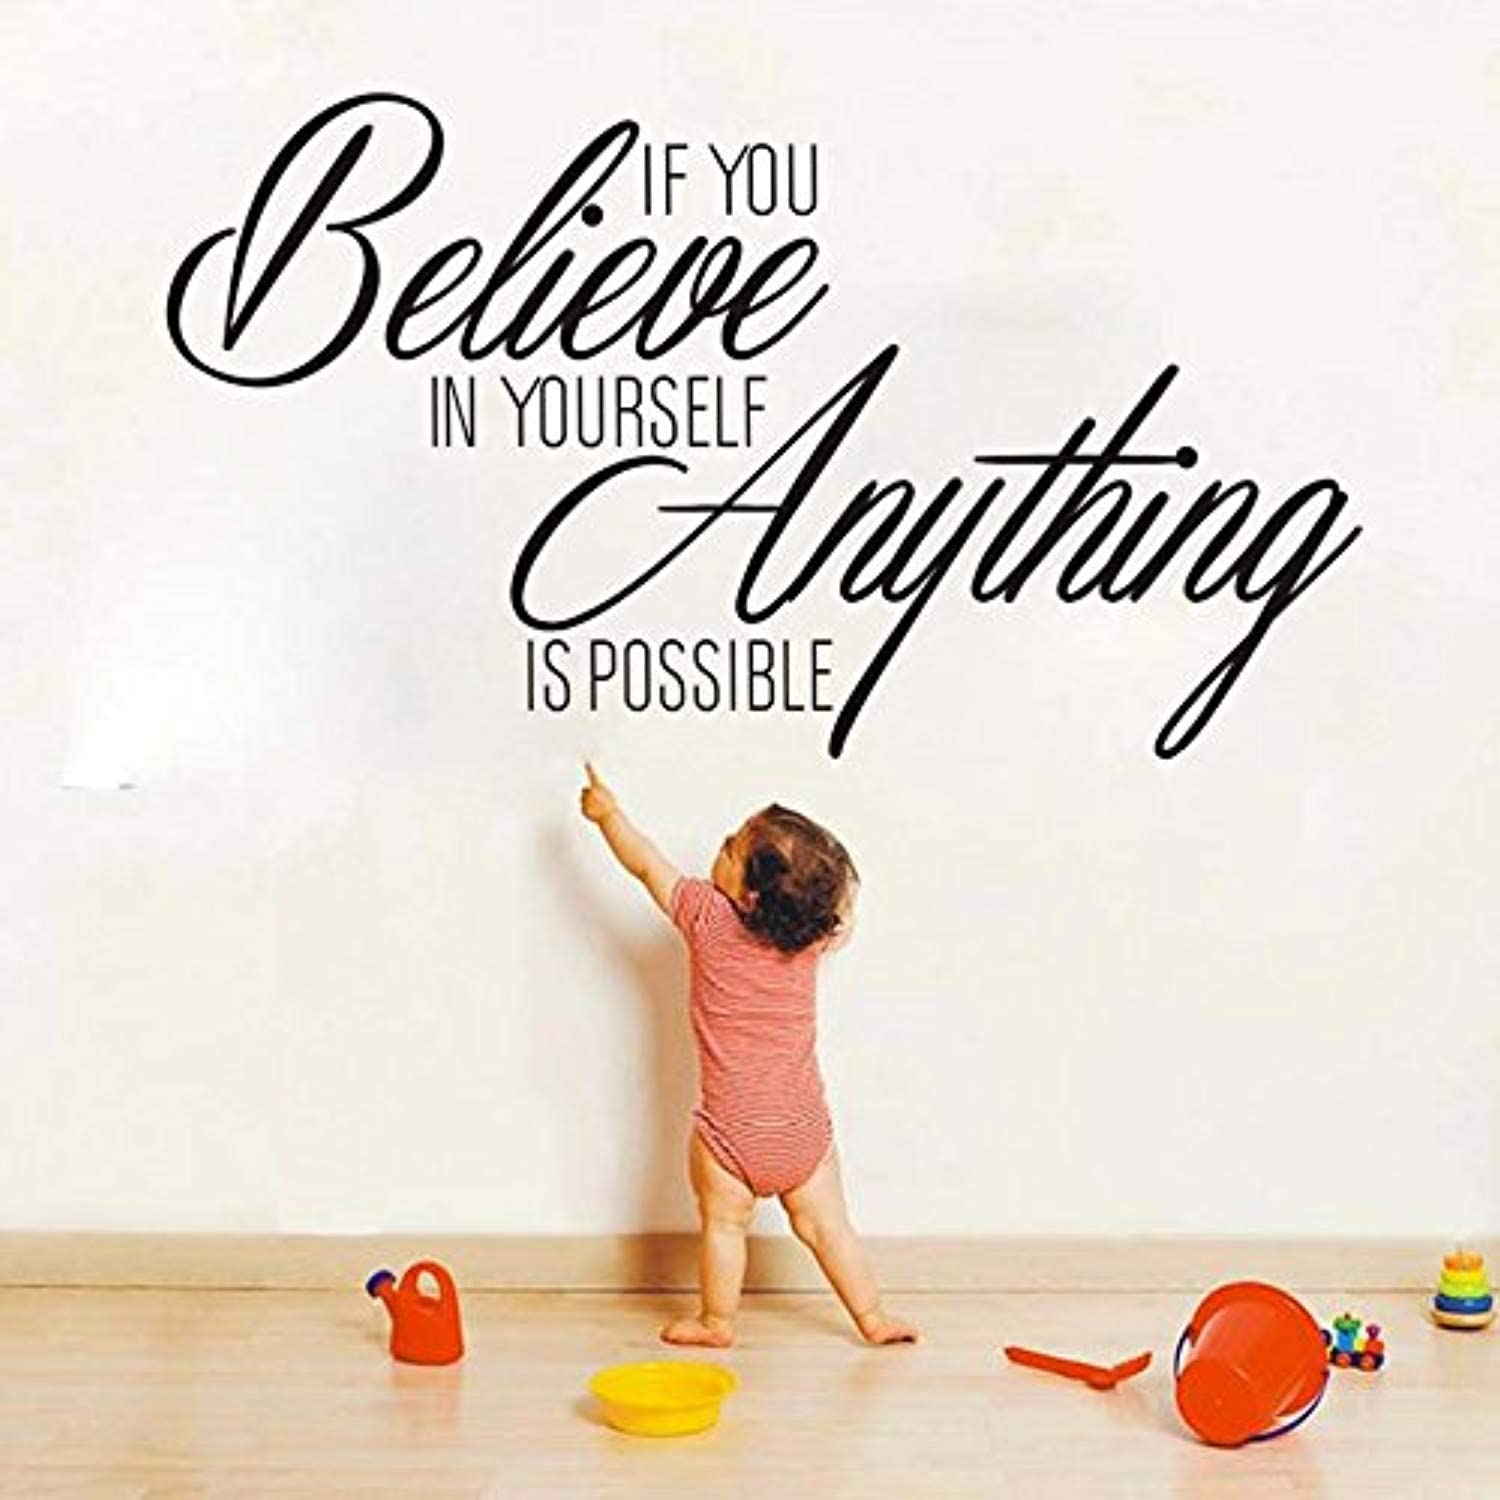 Vinyl Wall Art Words Decals Decor Believe in yourself and anything is possible